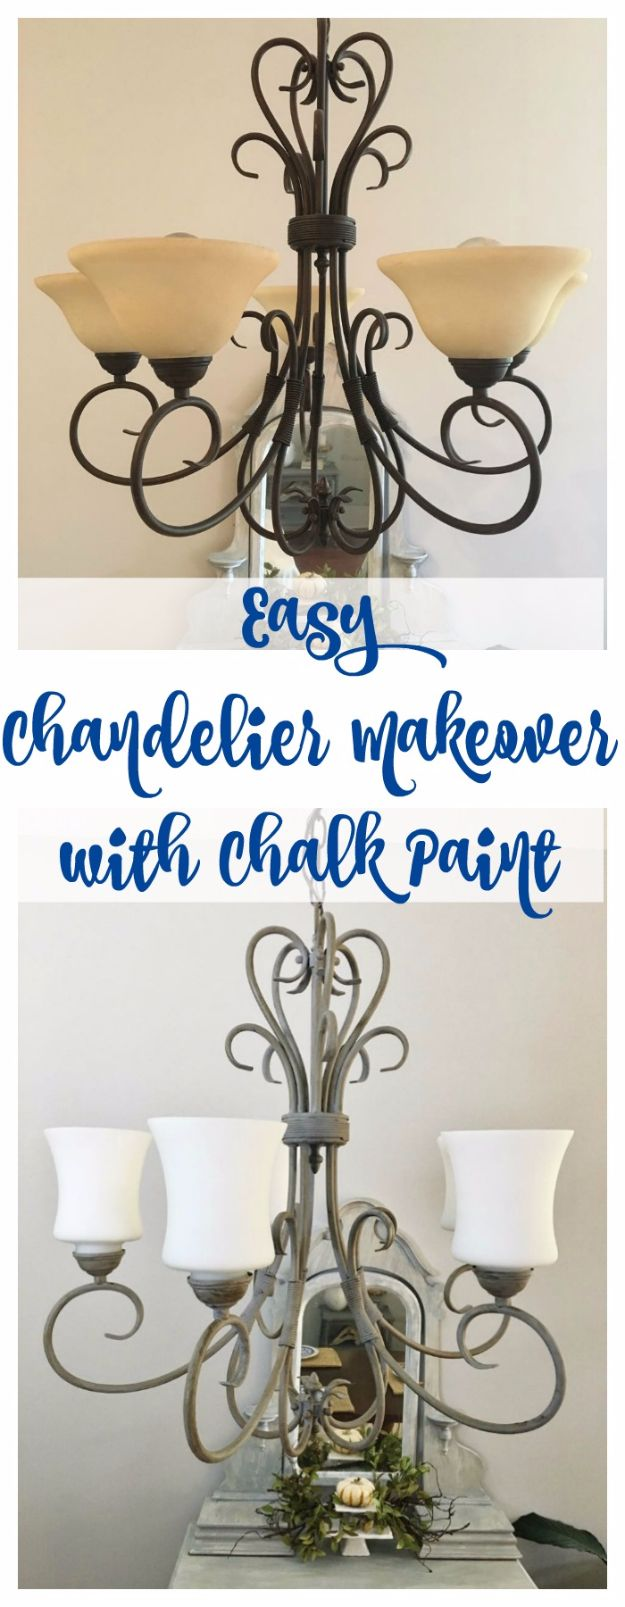 DIY Chandelier Makeovers - Chandelier Makeover with Chalk Paint - Easy Ideas for Old Brass, Crystal and Ugly Gold Chandelier Makeover - Cool Before and After Projects for Chandeliers - Farmhouse, Shabby Chic and Vintage Home Decor on A Budget - Living Room, Bedroom and Dining Room Idea DIY Joy Projects and Crafts